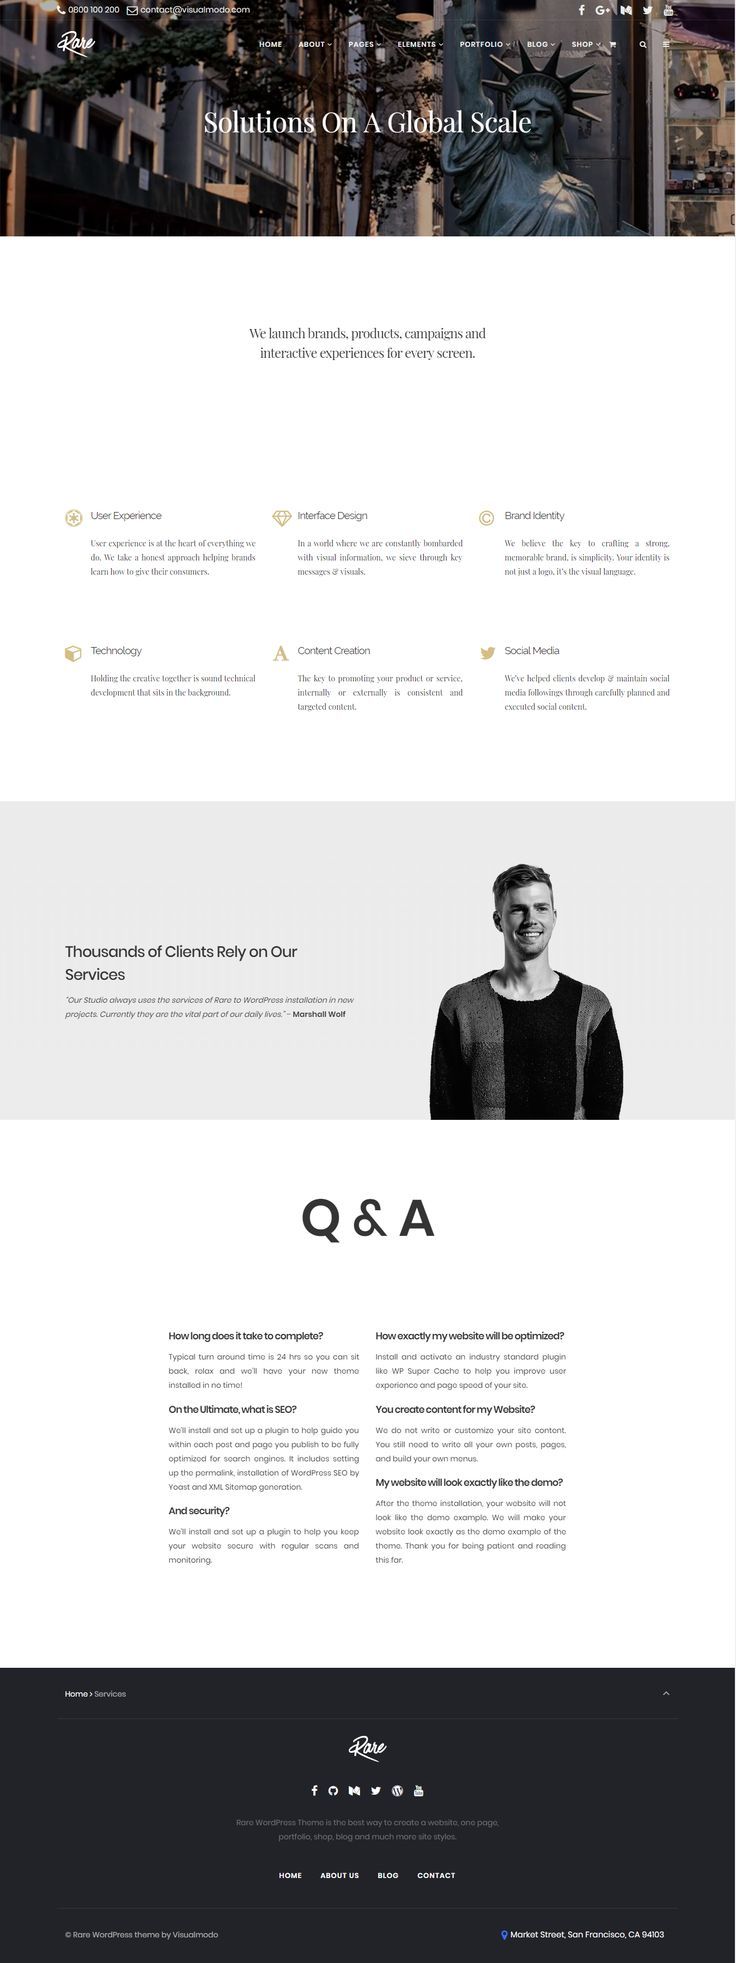 Build any site design without code knowledge and build it beauty - Rare ultimate smart WordPress theme - clean, modern, stylish, minimalist and multi-purpose template  https://visualmodo.com/theme/rare-wordpress-theme/ #webdesign #HTML5 #CSS3 #template #plugins #themes #WordPress #onepage #ecommerce #responsive #retina #marketing #website #blog #bootstrap #magazine #slider #business #siteBuilder #creative